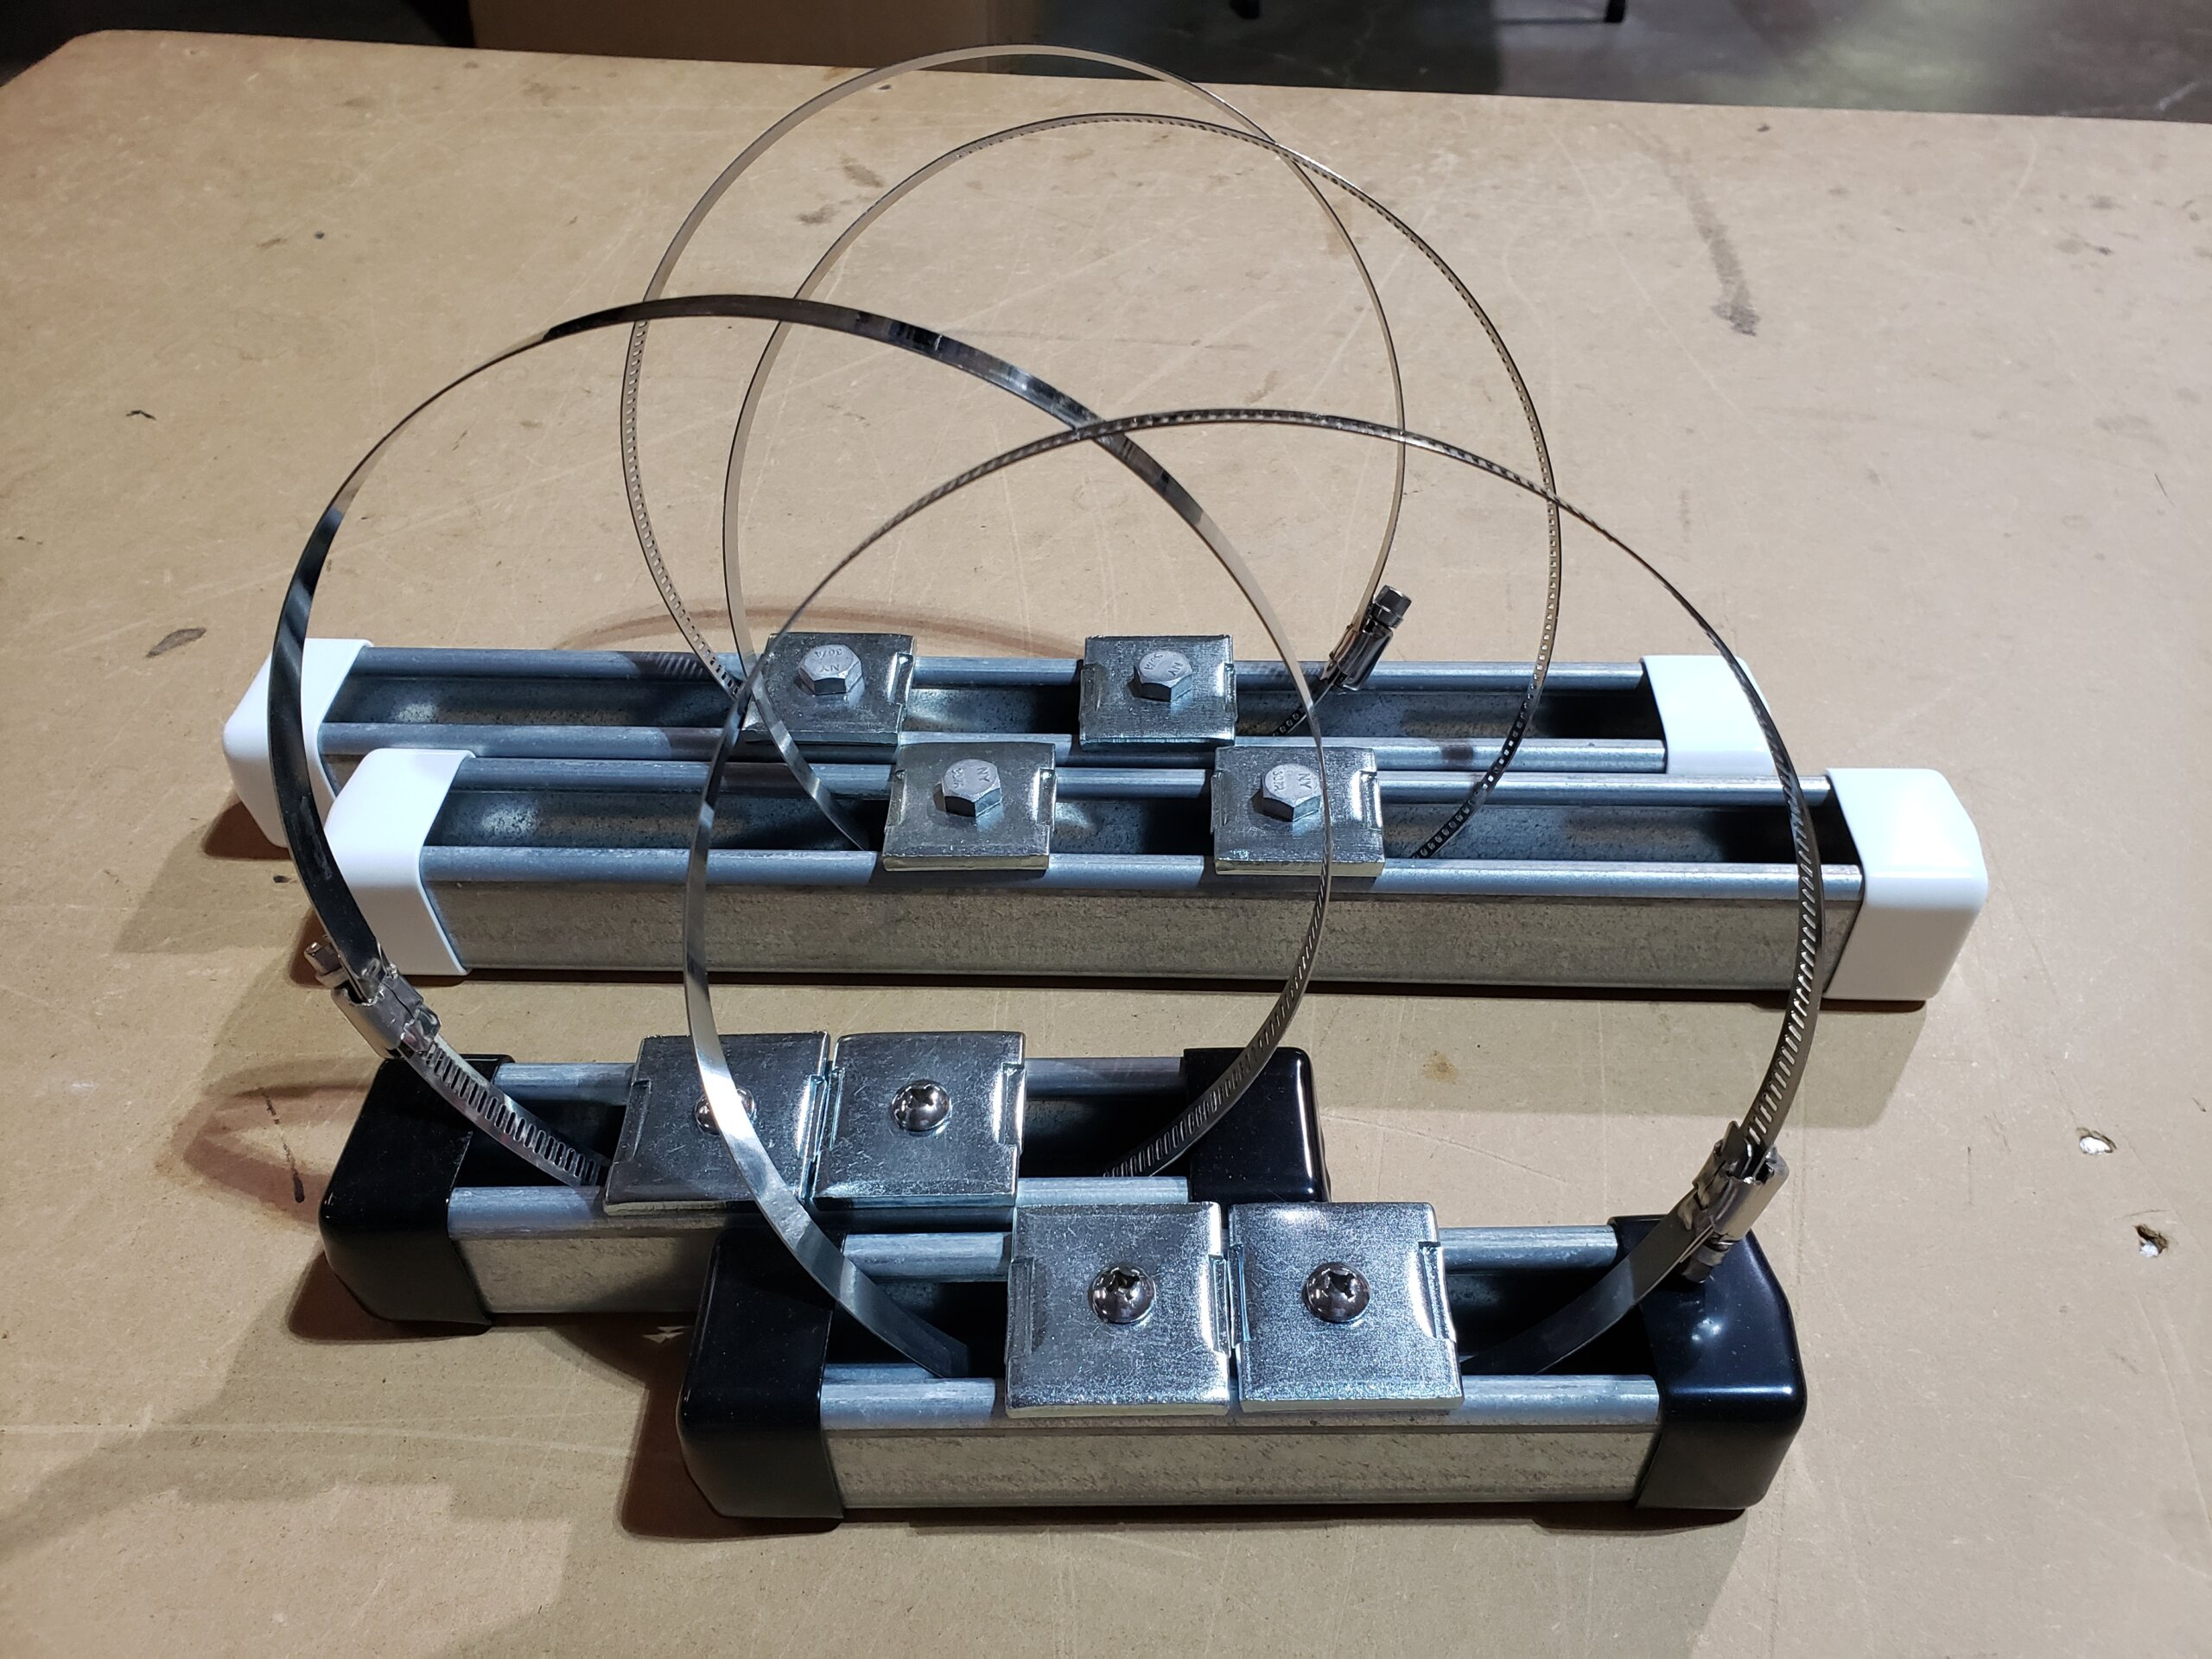 ims mounting bar w worm gear clamp scaled - Strong Strut Mounting Bars